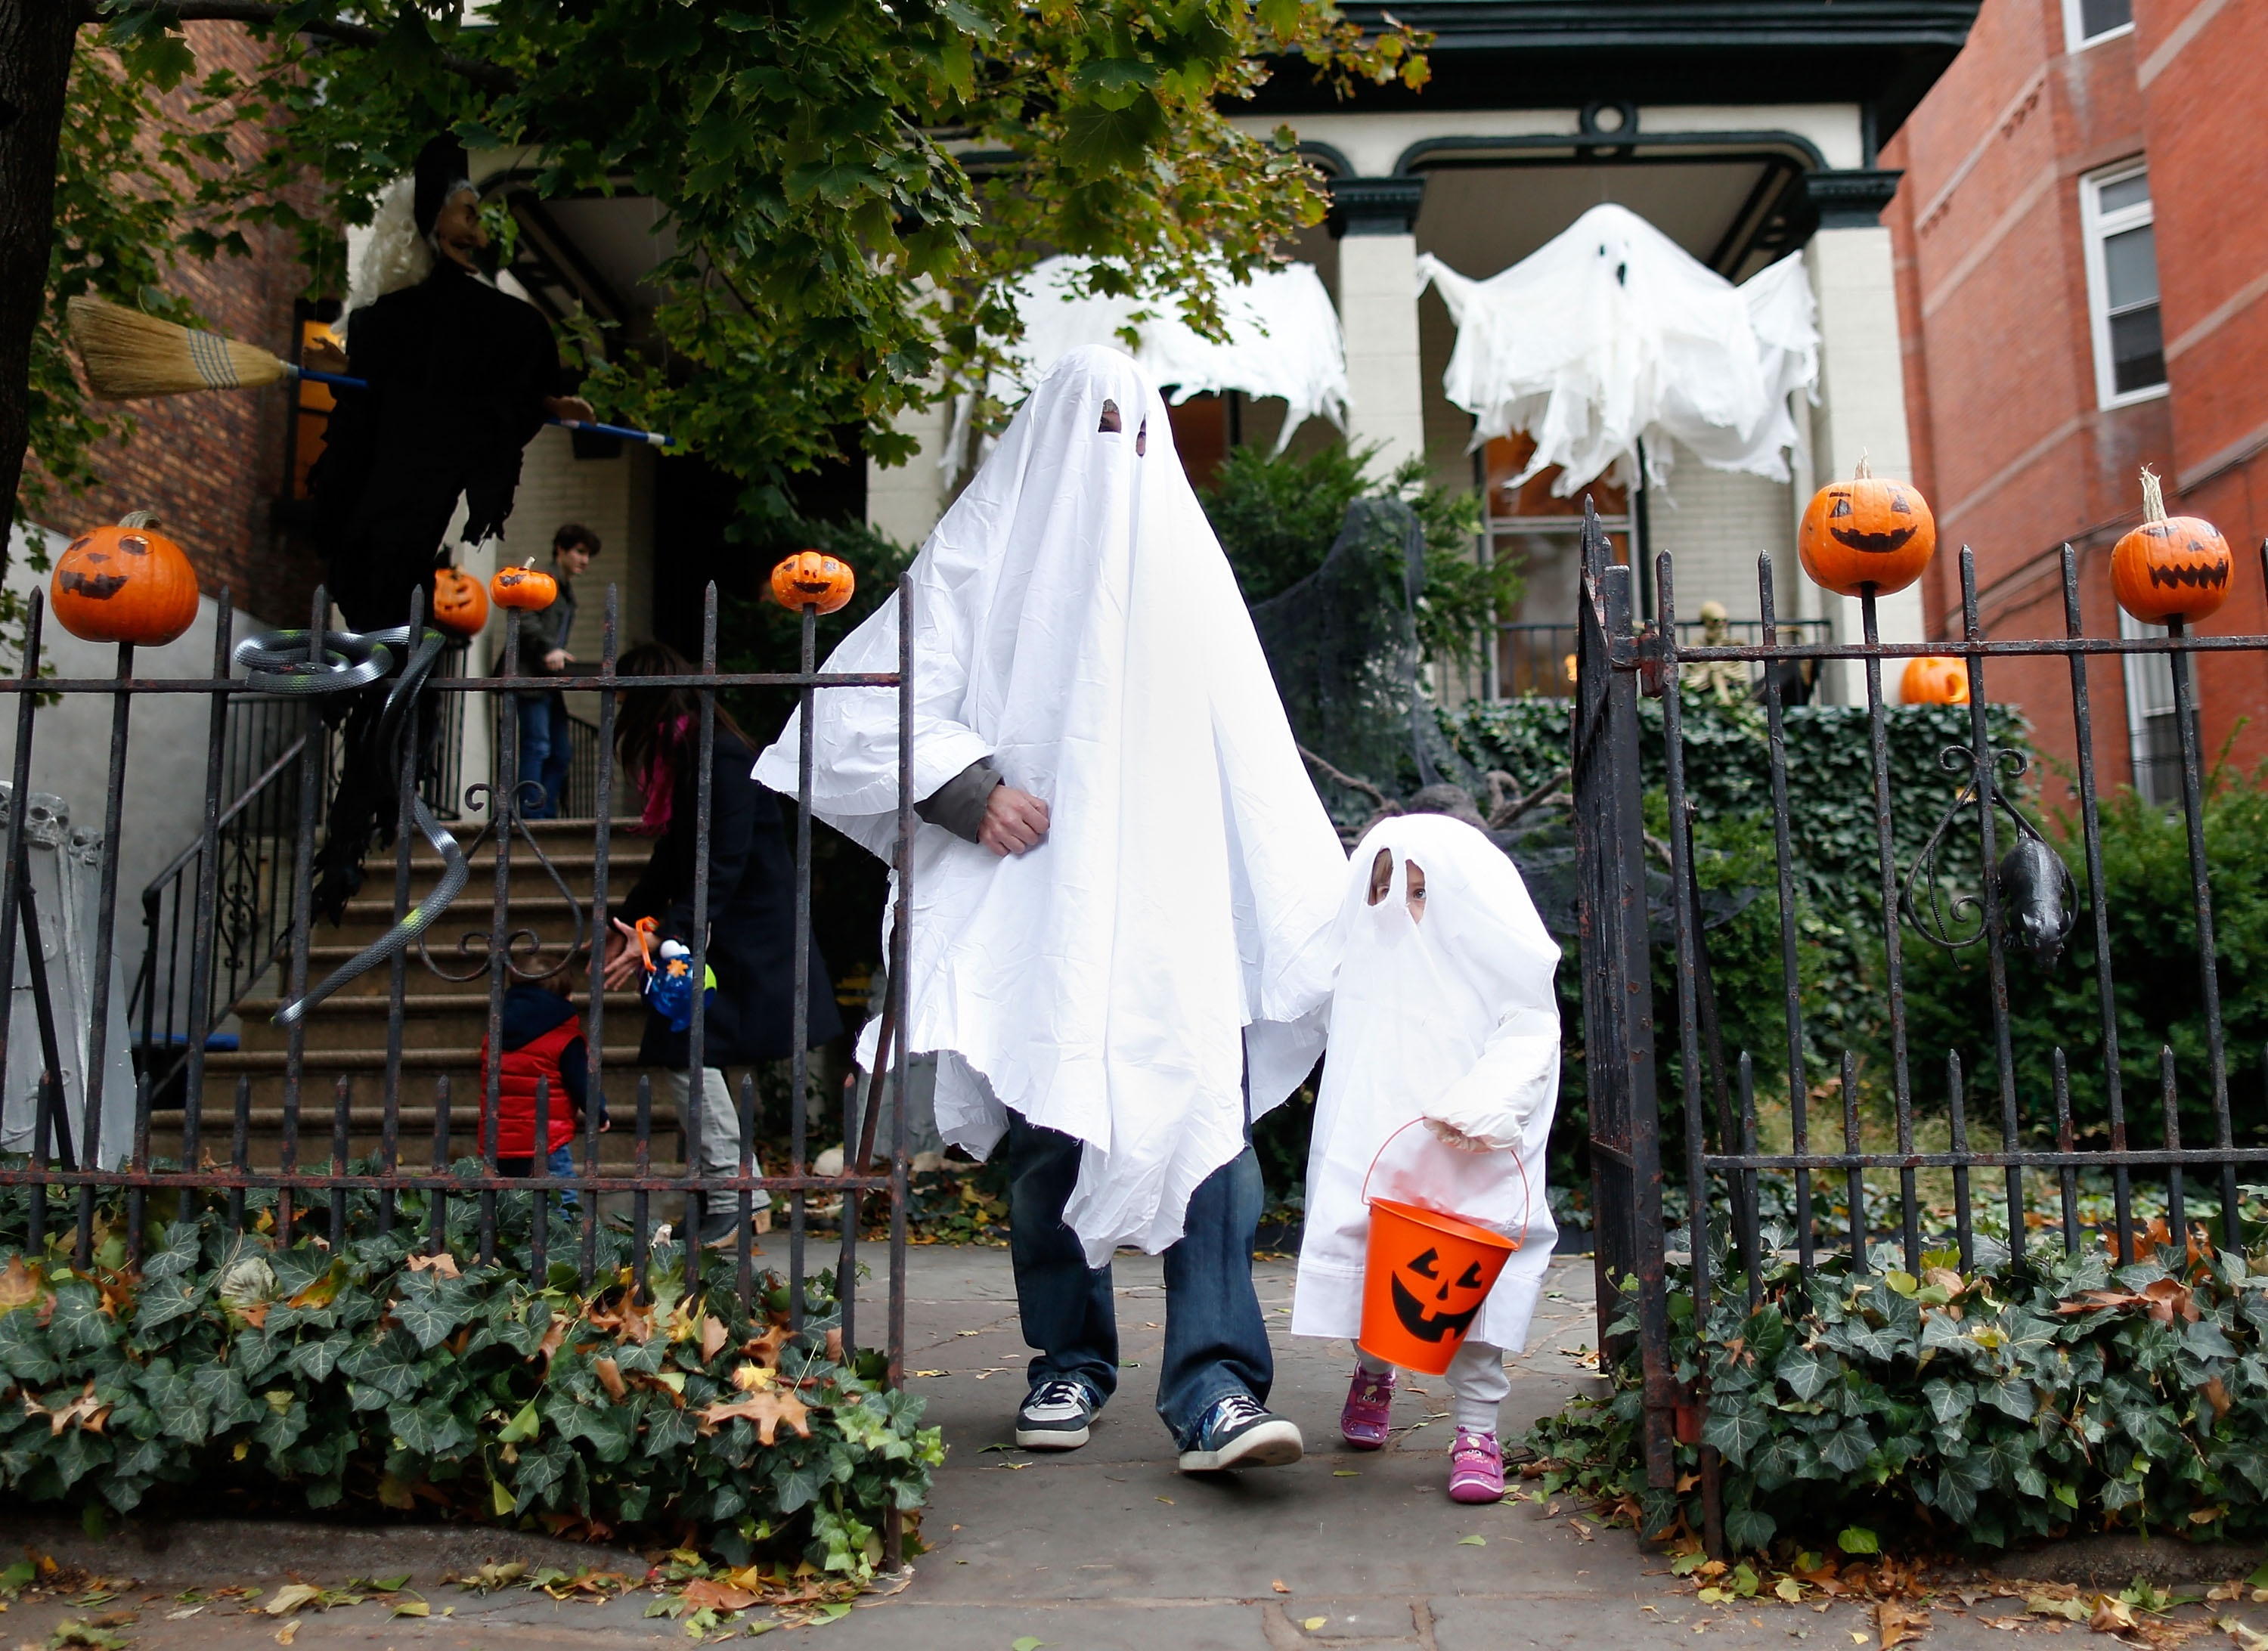 How do you find trick-or-treating times in Ohio?